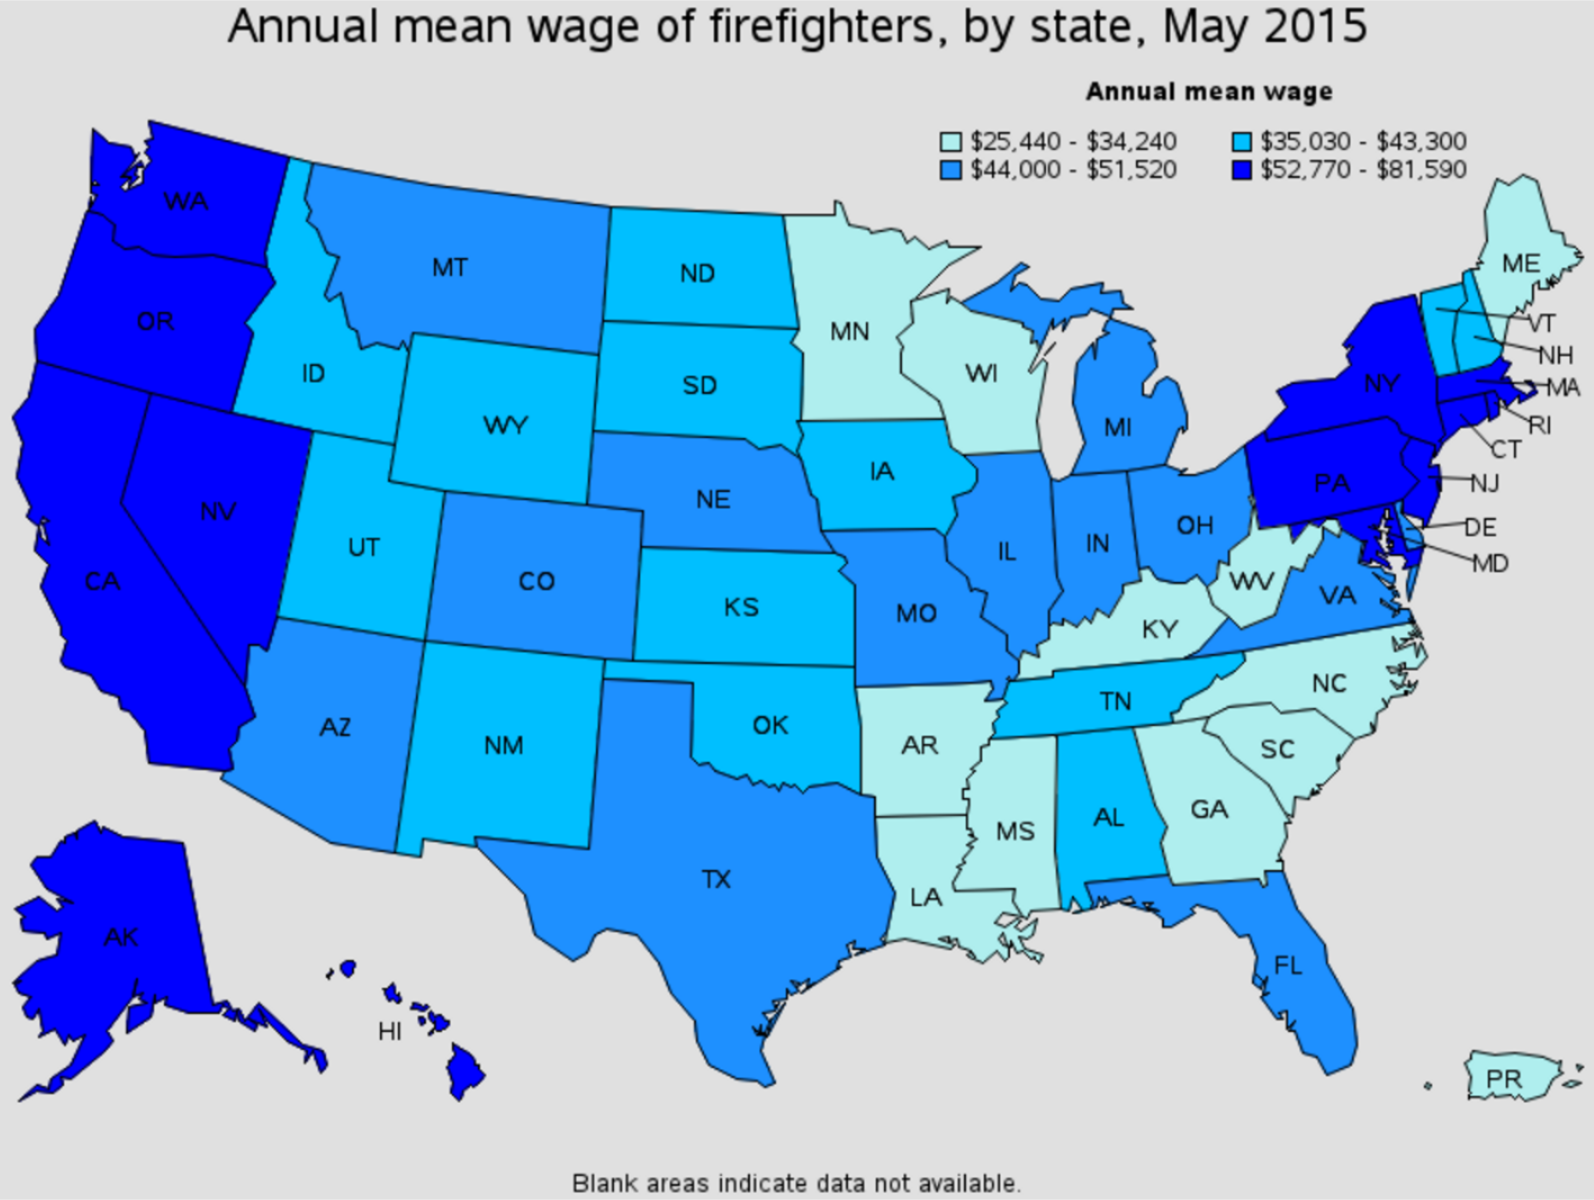 firefighter average salary by state Yountville California